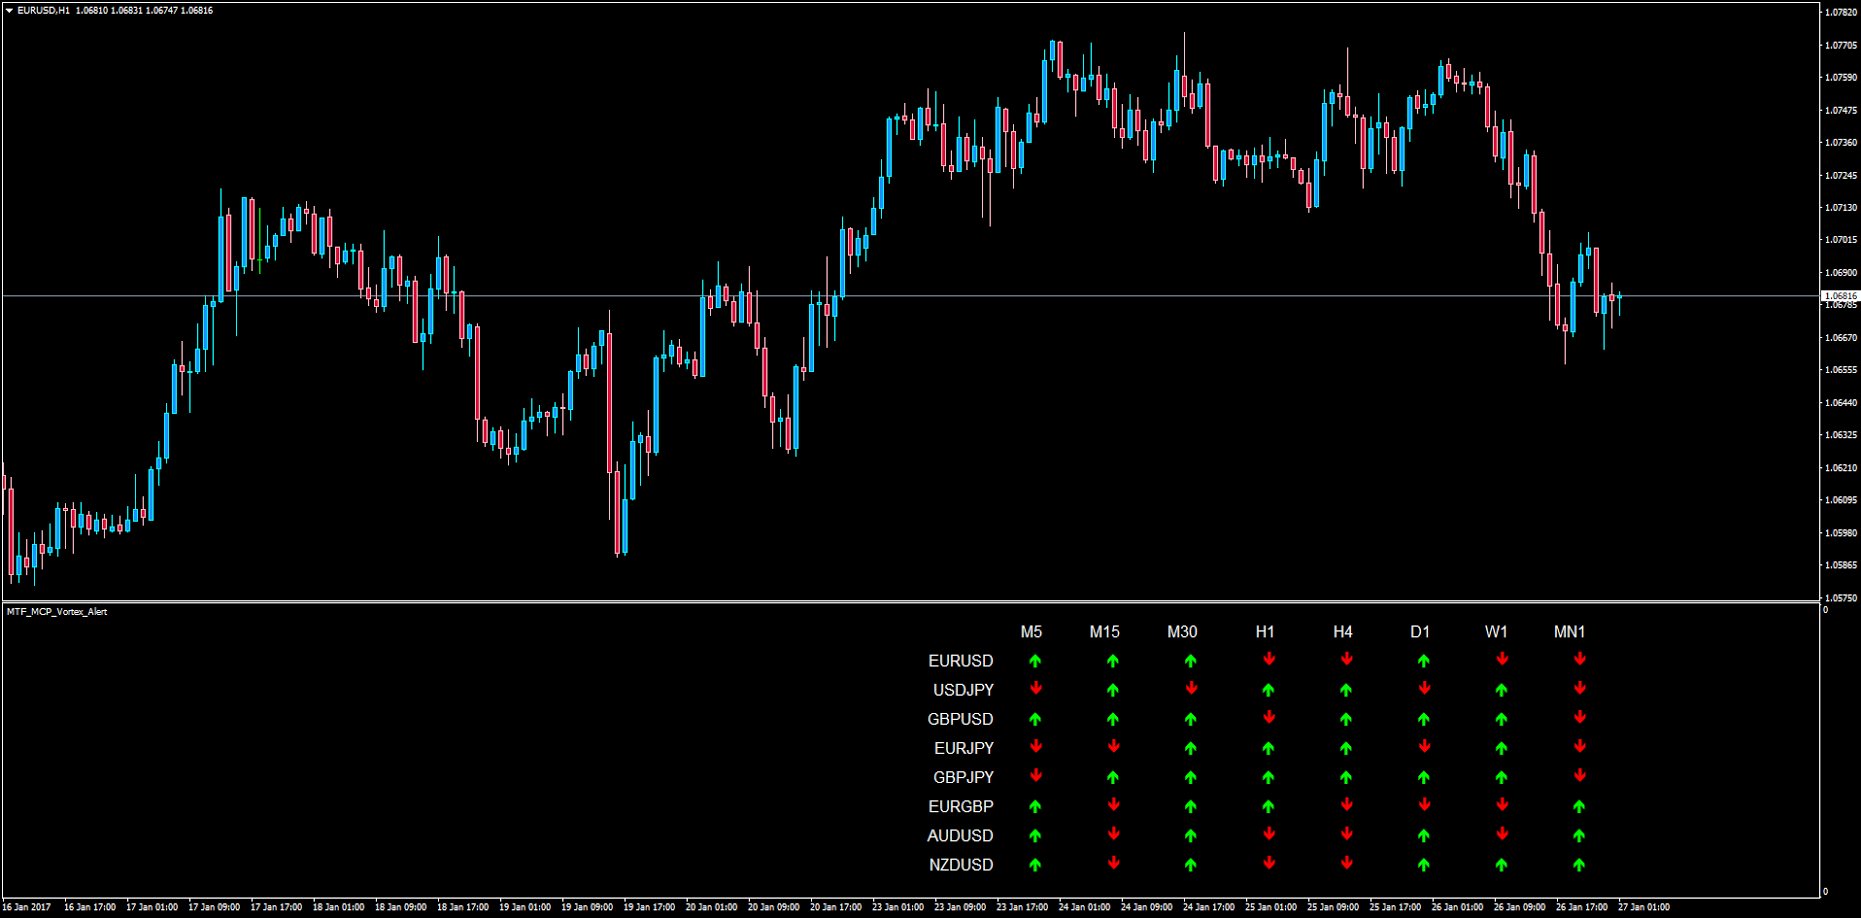 Forex multi time frame trend indicator for mt4 earnforex roboforex malaysia